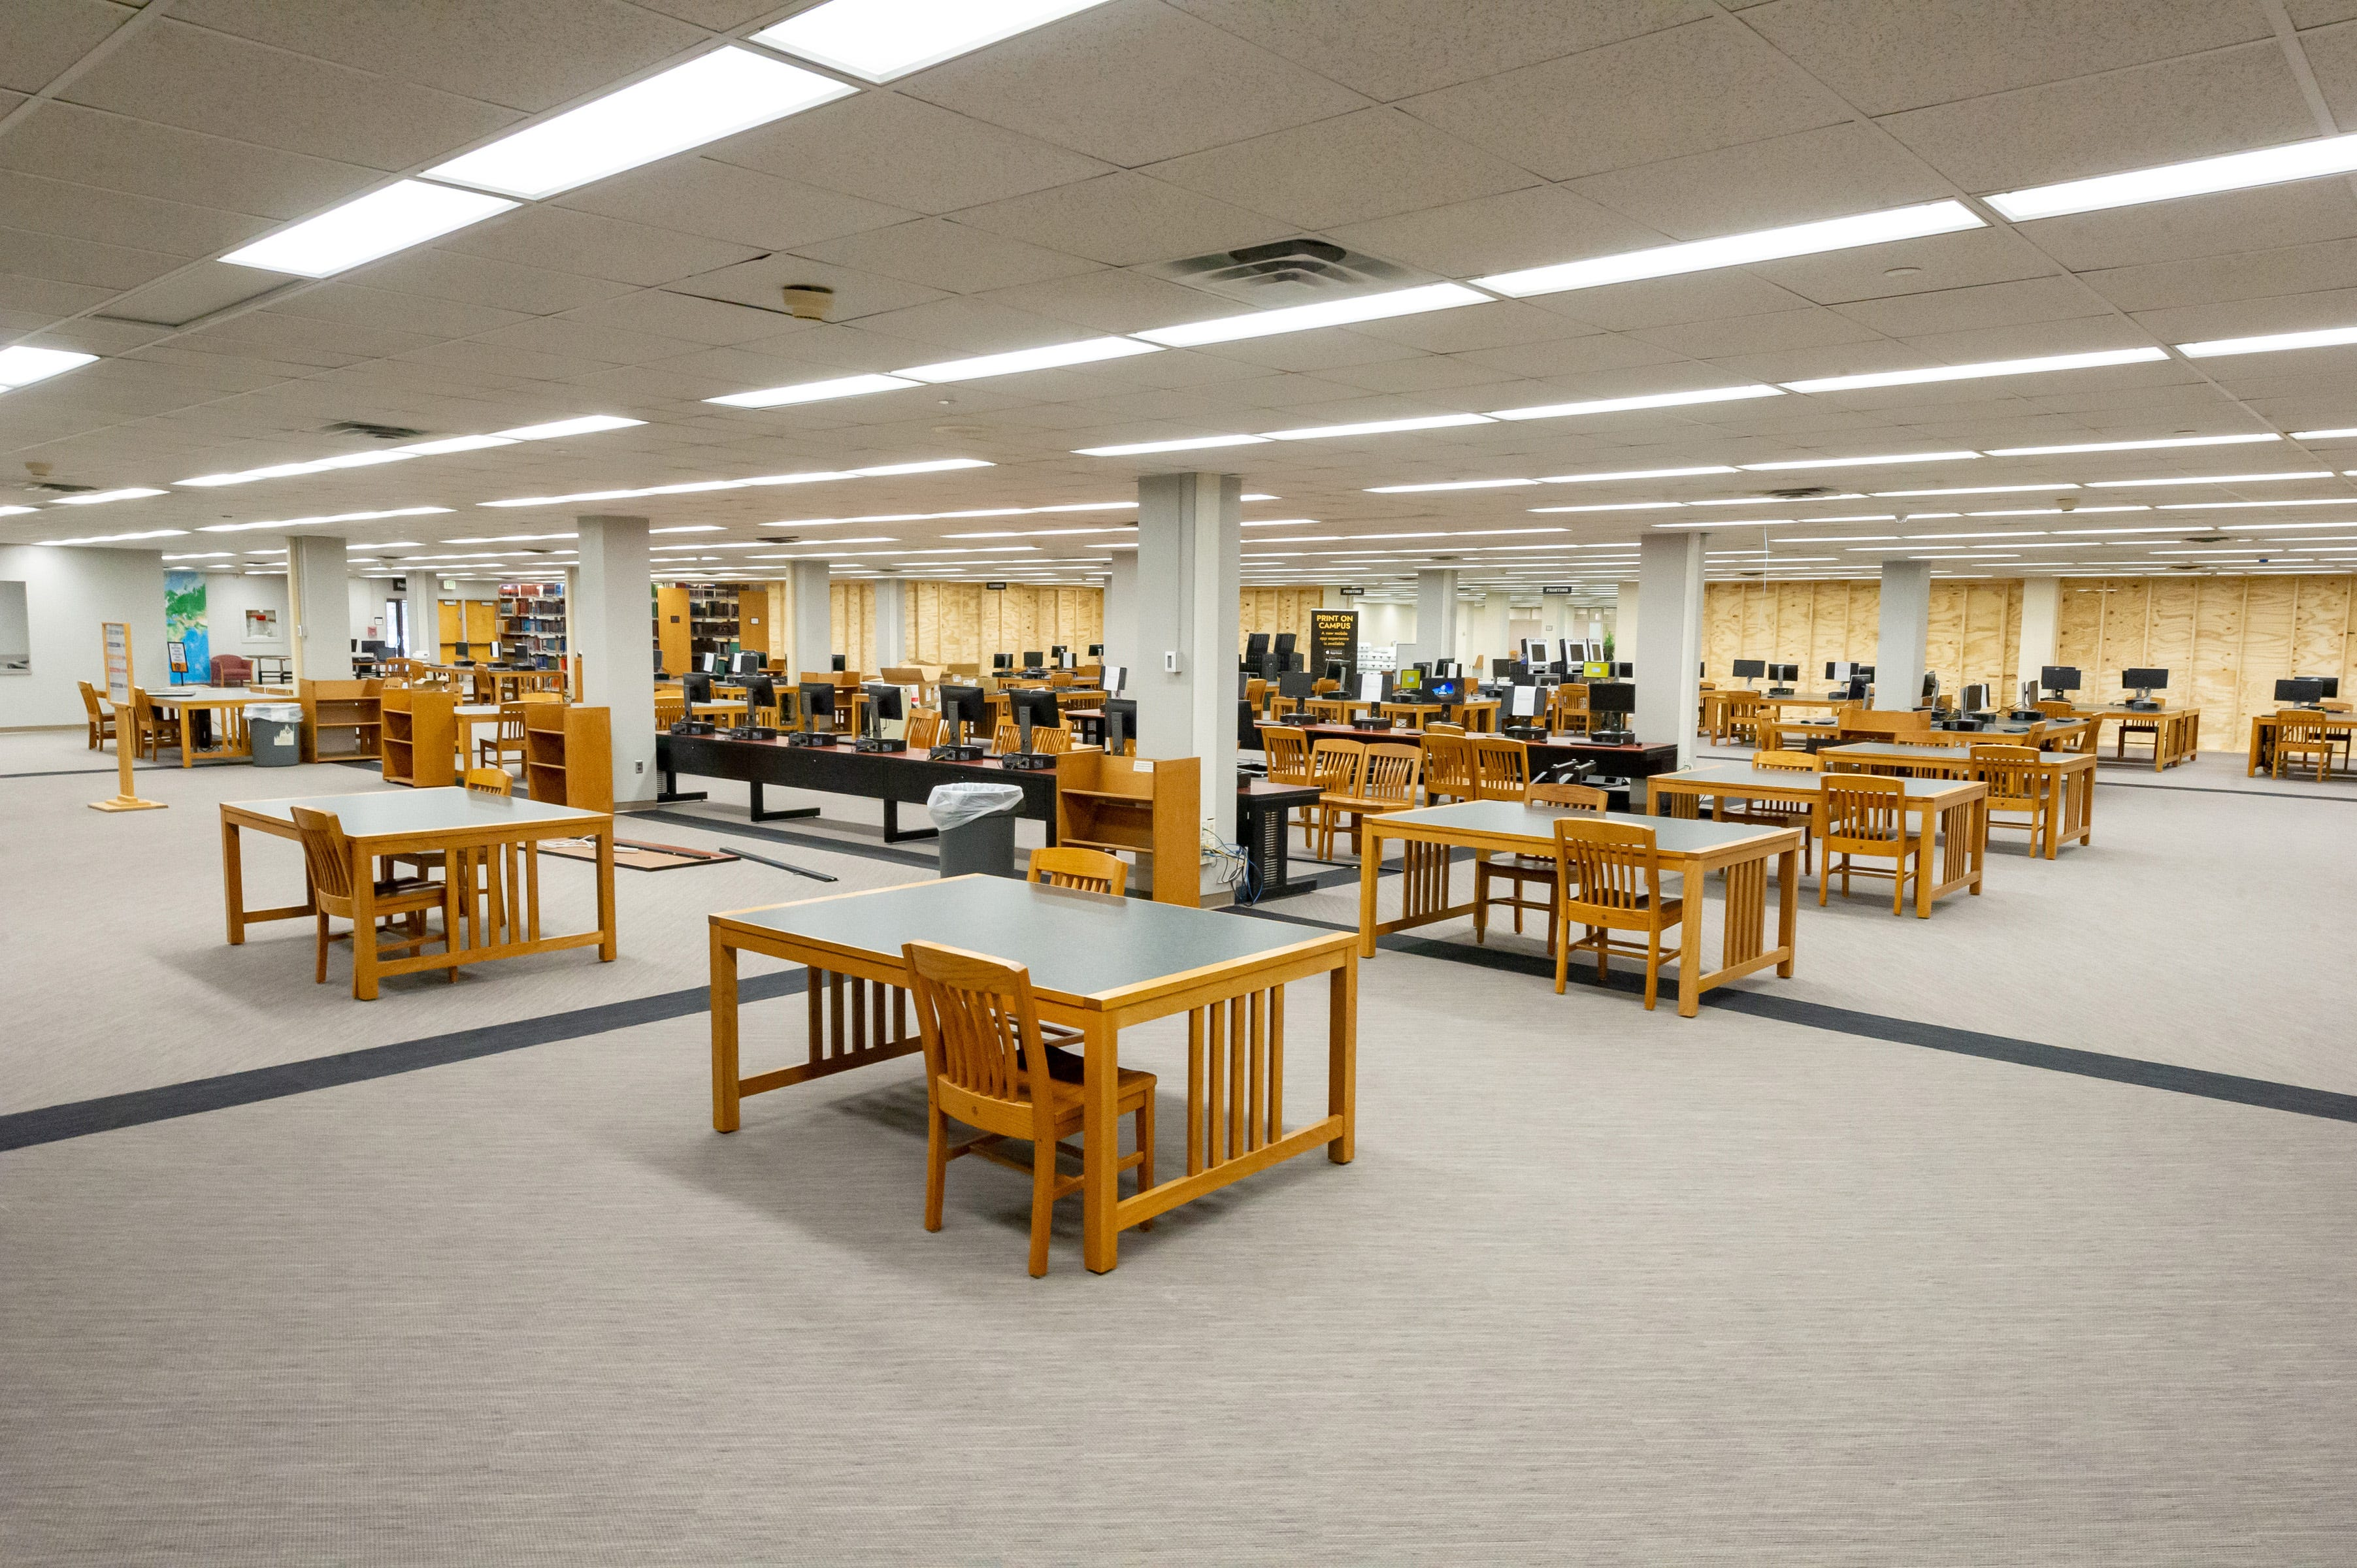 USM's $12.1 million library renovation: What's in store for students